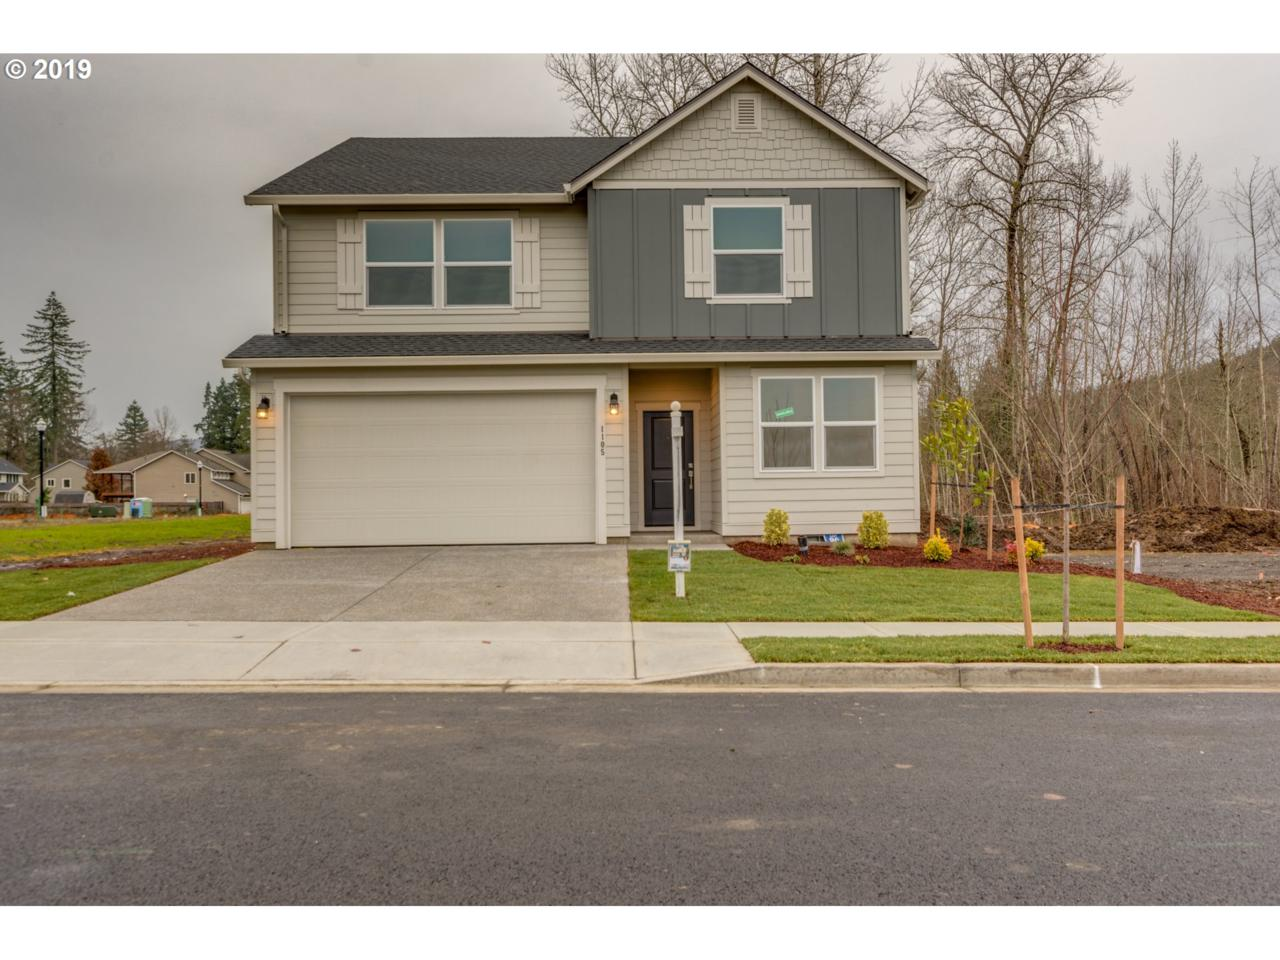 1534 37TH Ave - Photo 1